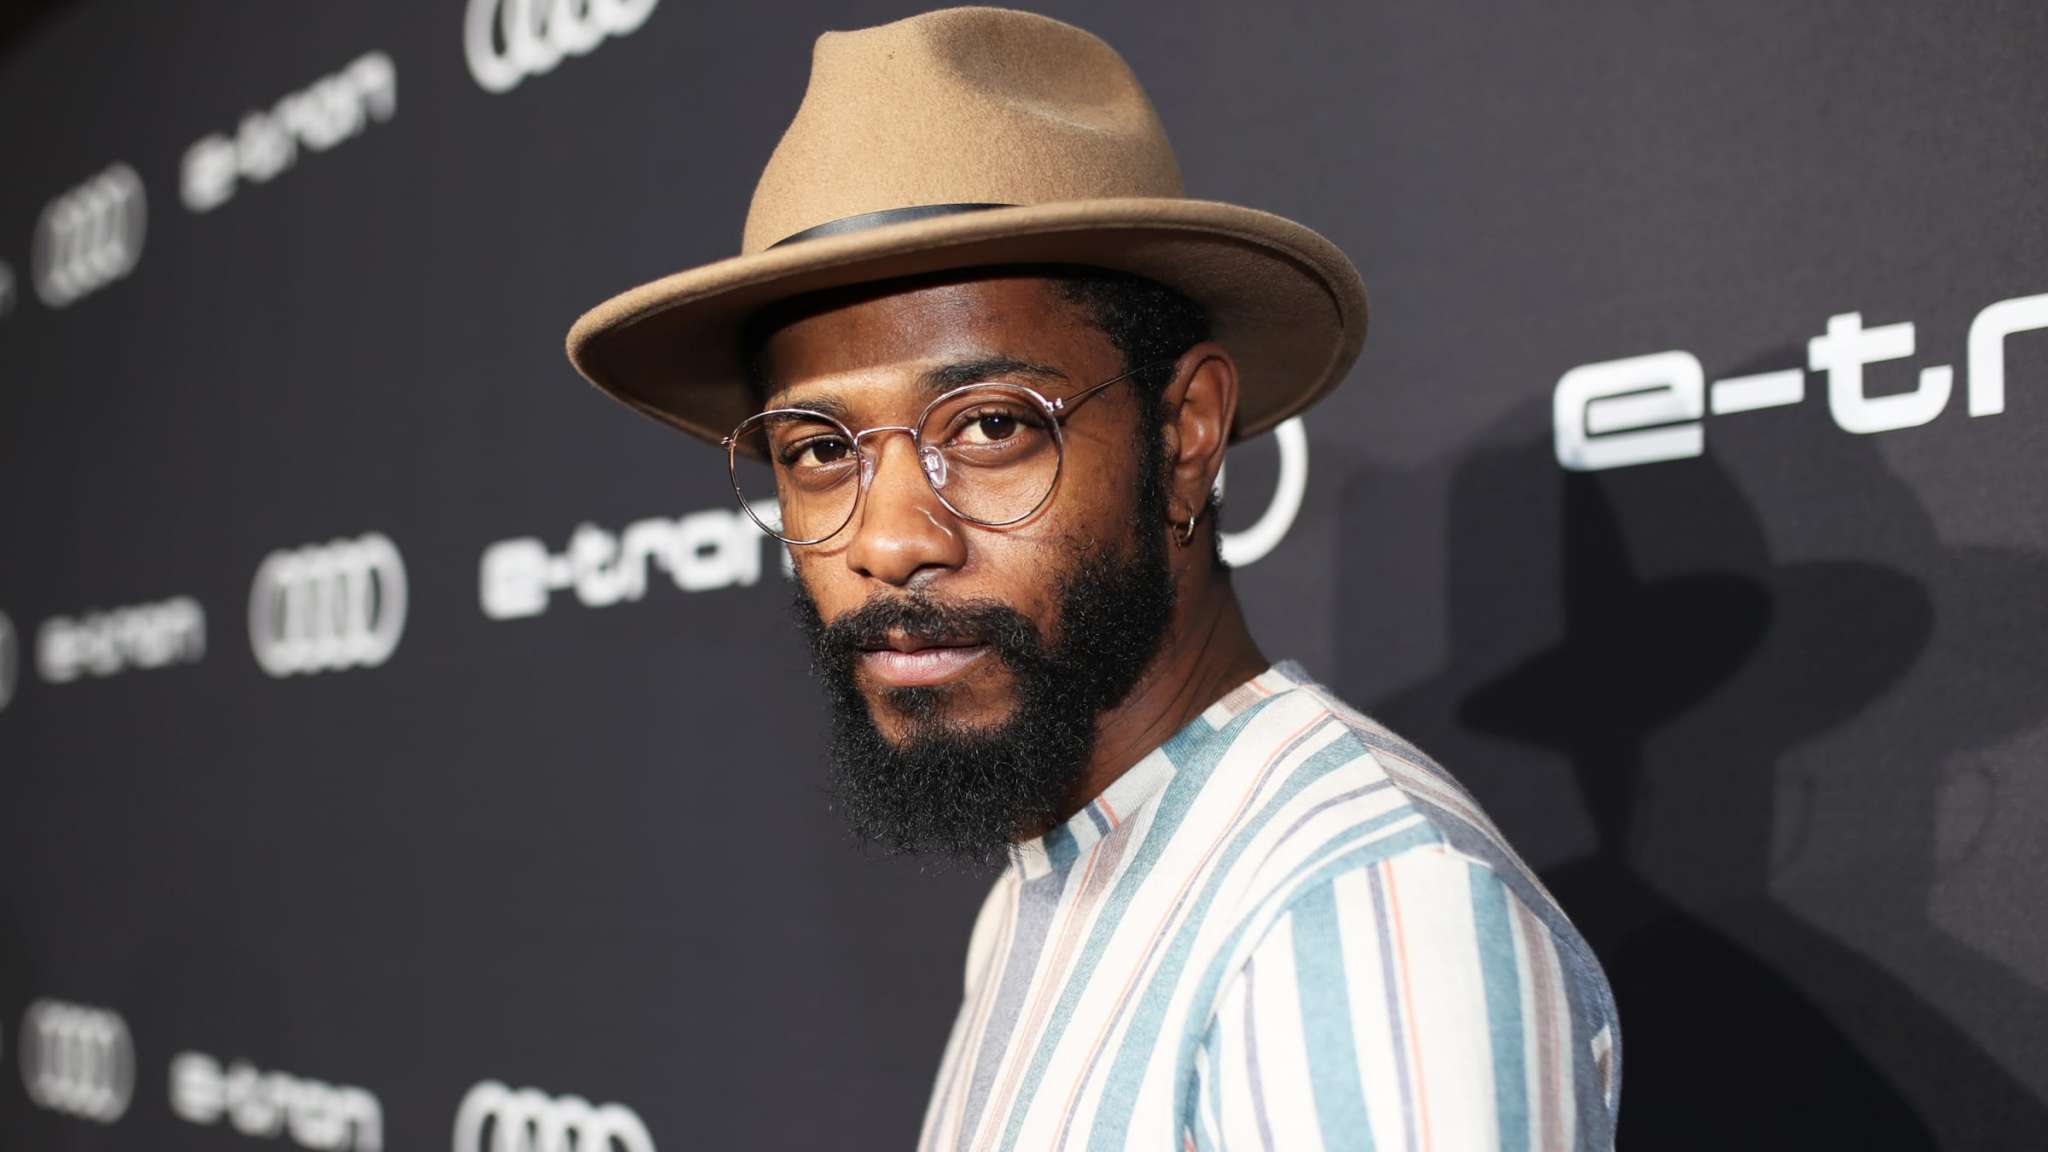 LaKeith Stanfield Addresses His Involvement In Anti Semitic Chat Room And